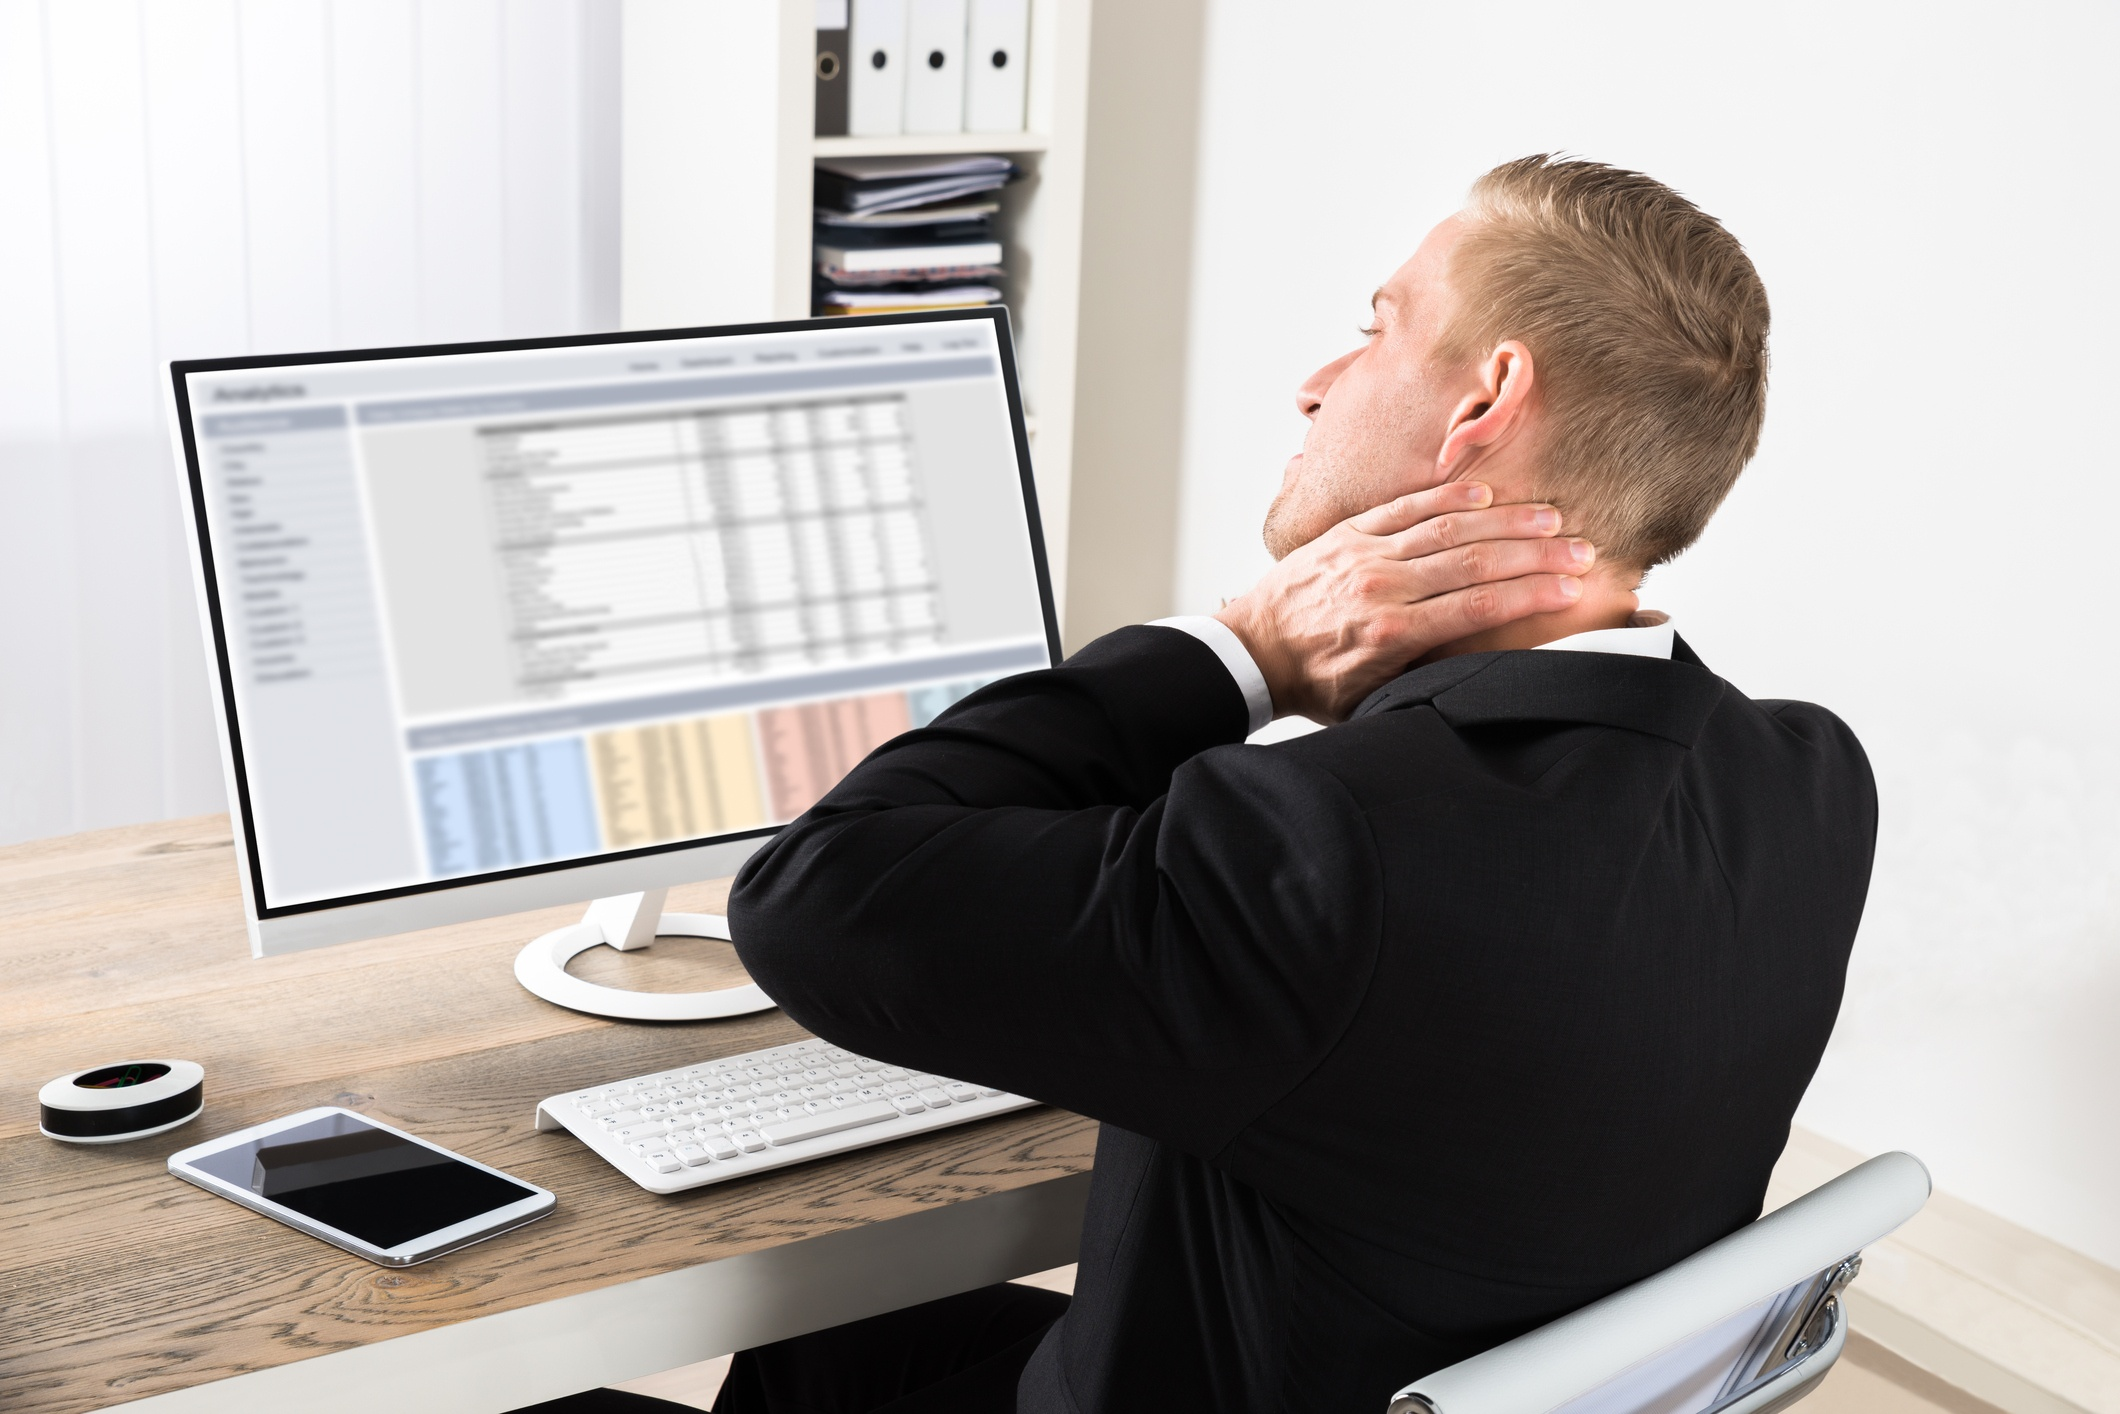 Can Good Posture Make You Healthier? Here are 5 Tips to Consider